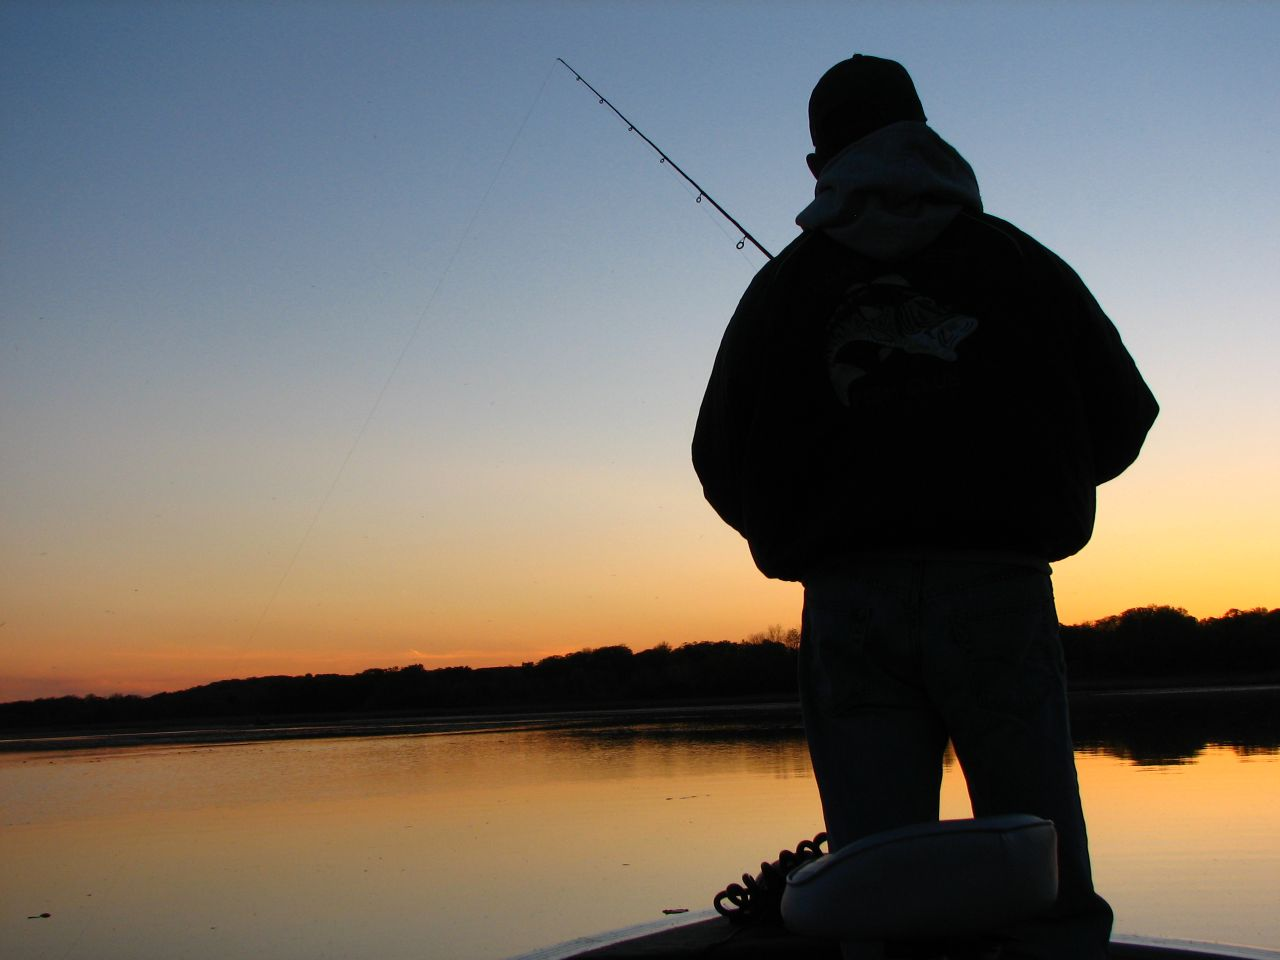 Fishing time bass fishing time in the seaside at evening for Bass fishing times